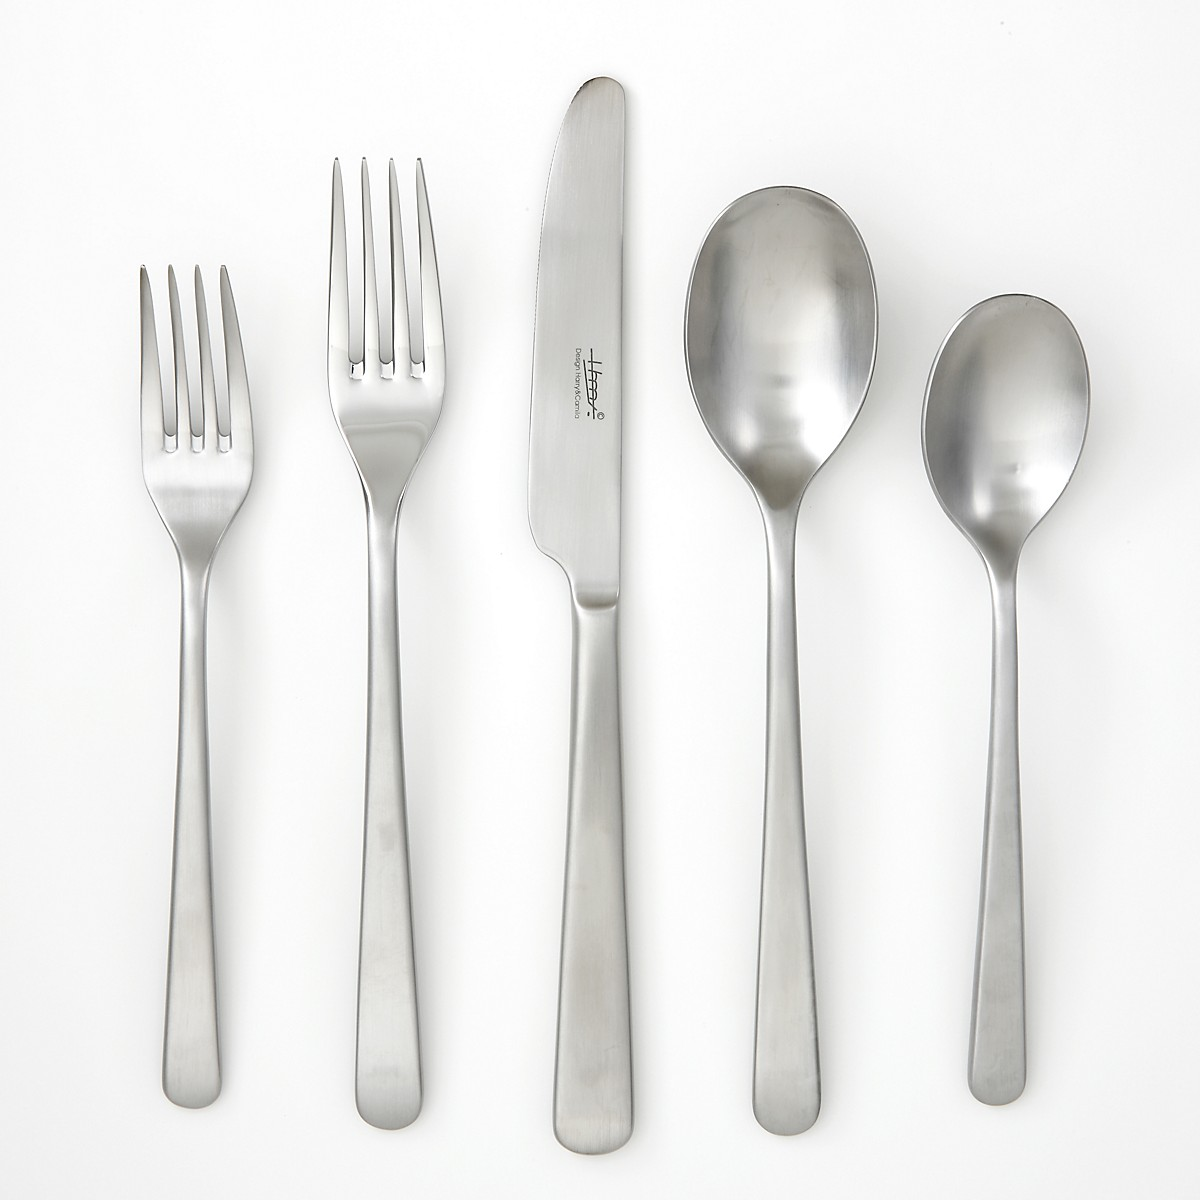 Best cambridge flatware 5 pcs silverware flatware for kitchen or dining Ideas